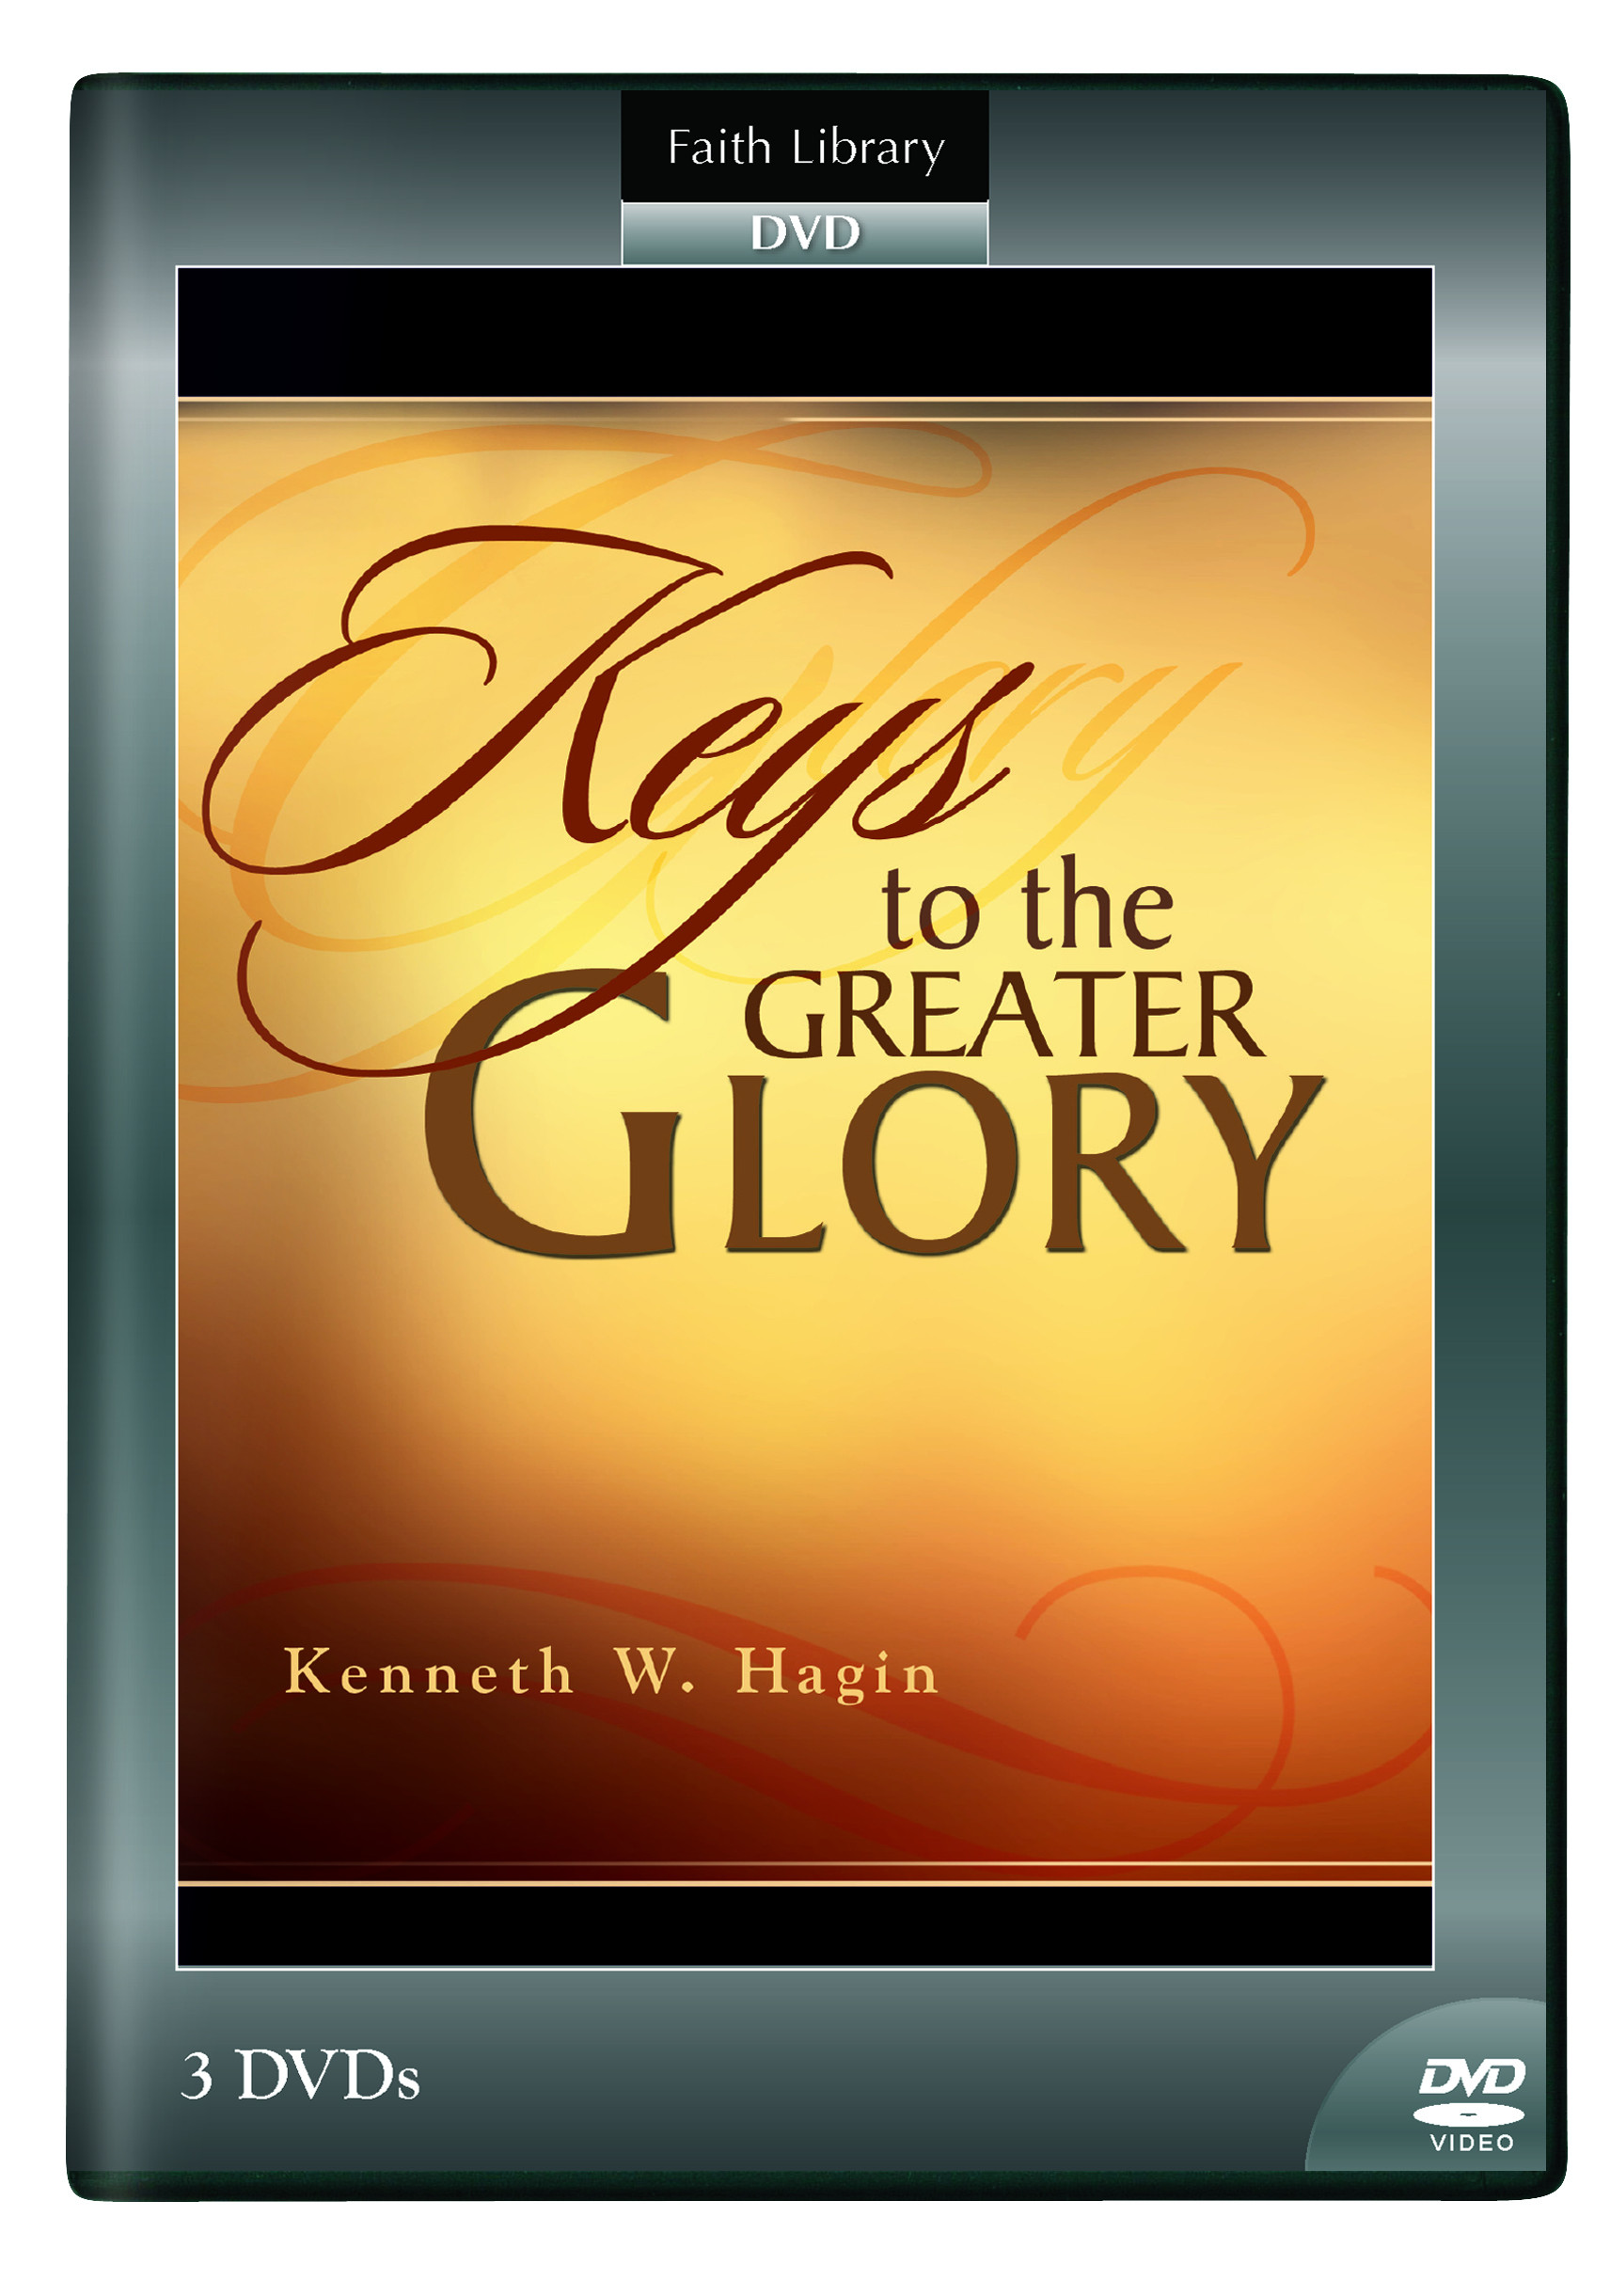 Keys to the Greater Glory (3 DVDs)